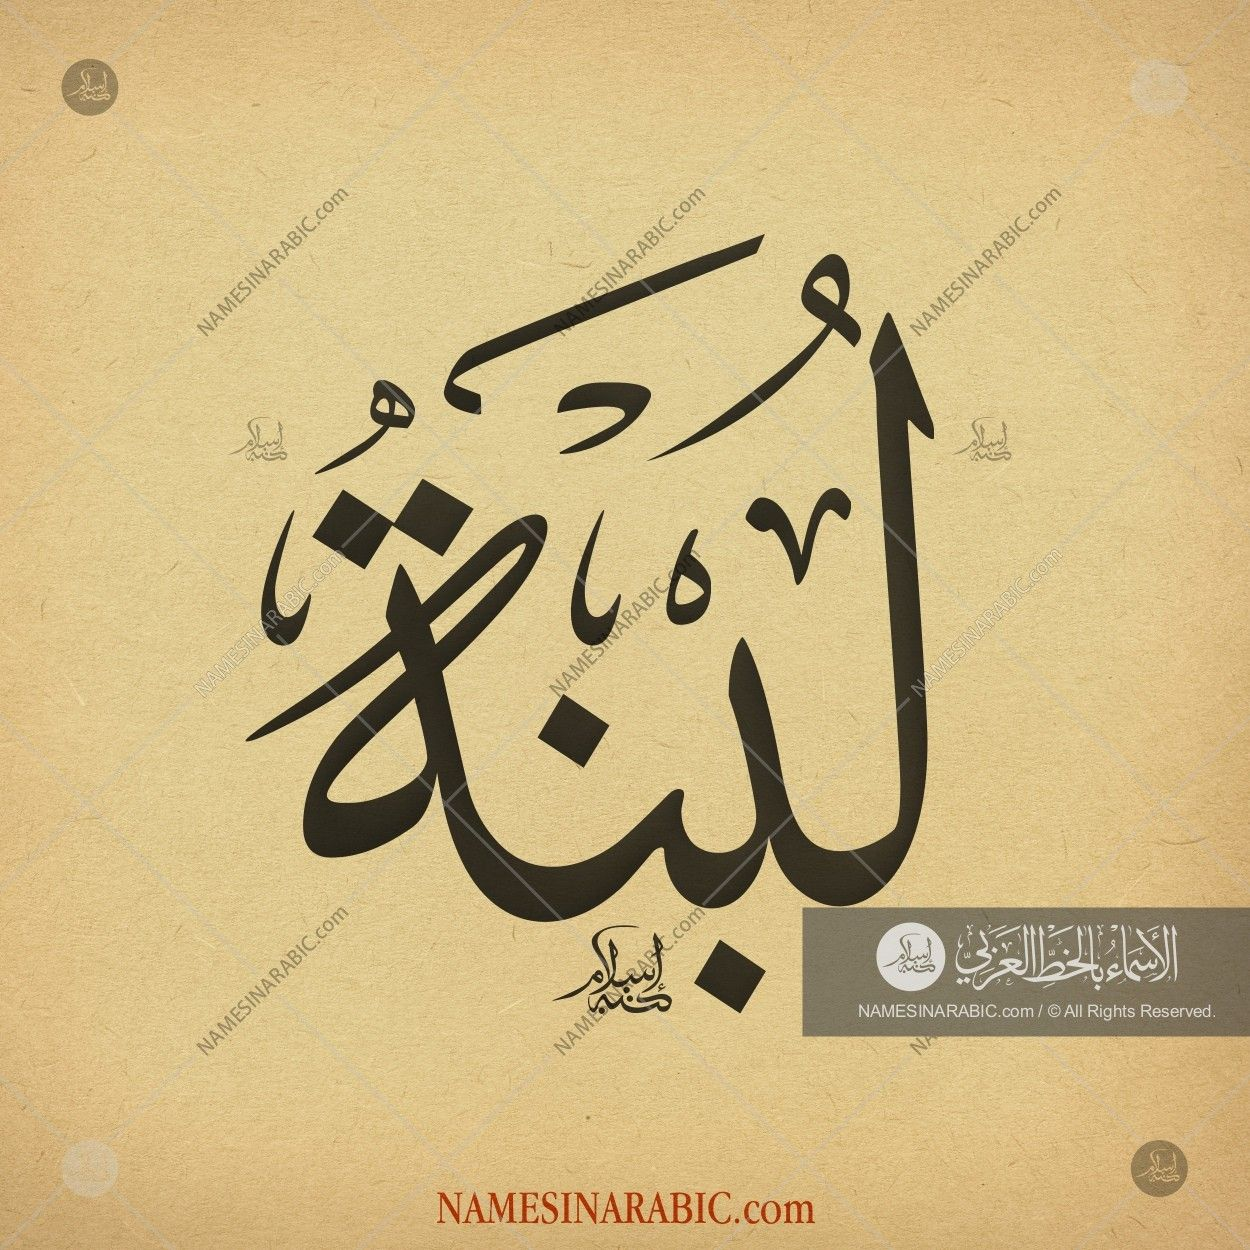 Lubna - لبنة / Names in Arabic Calligraphy | Name# 3200